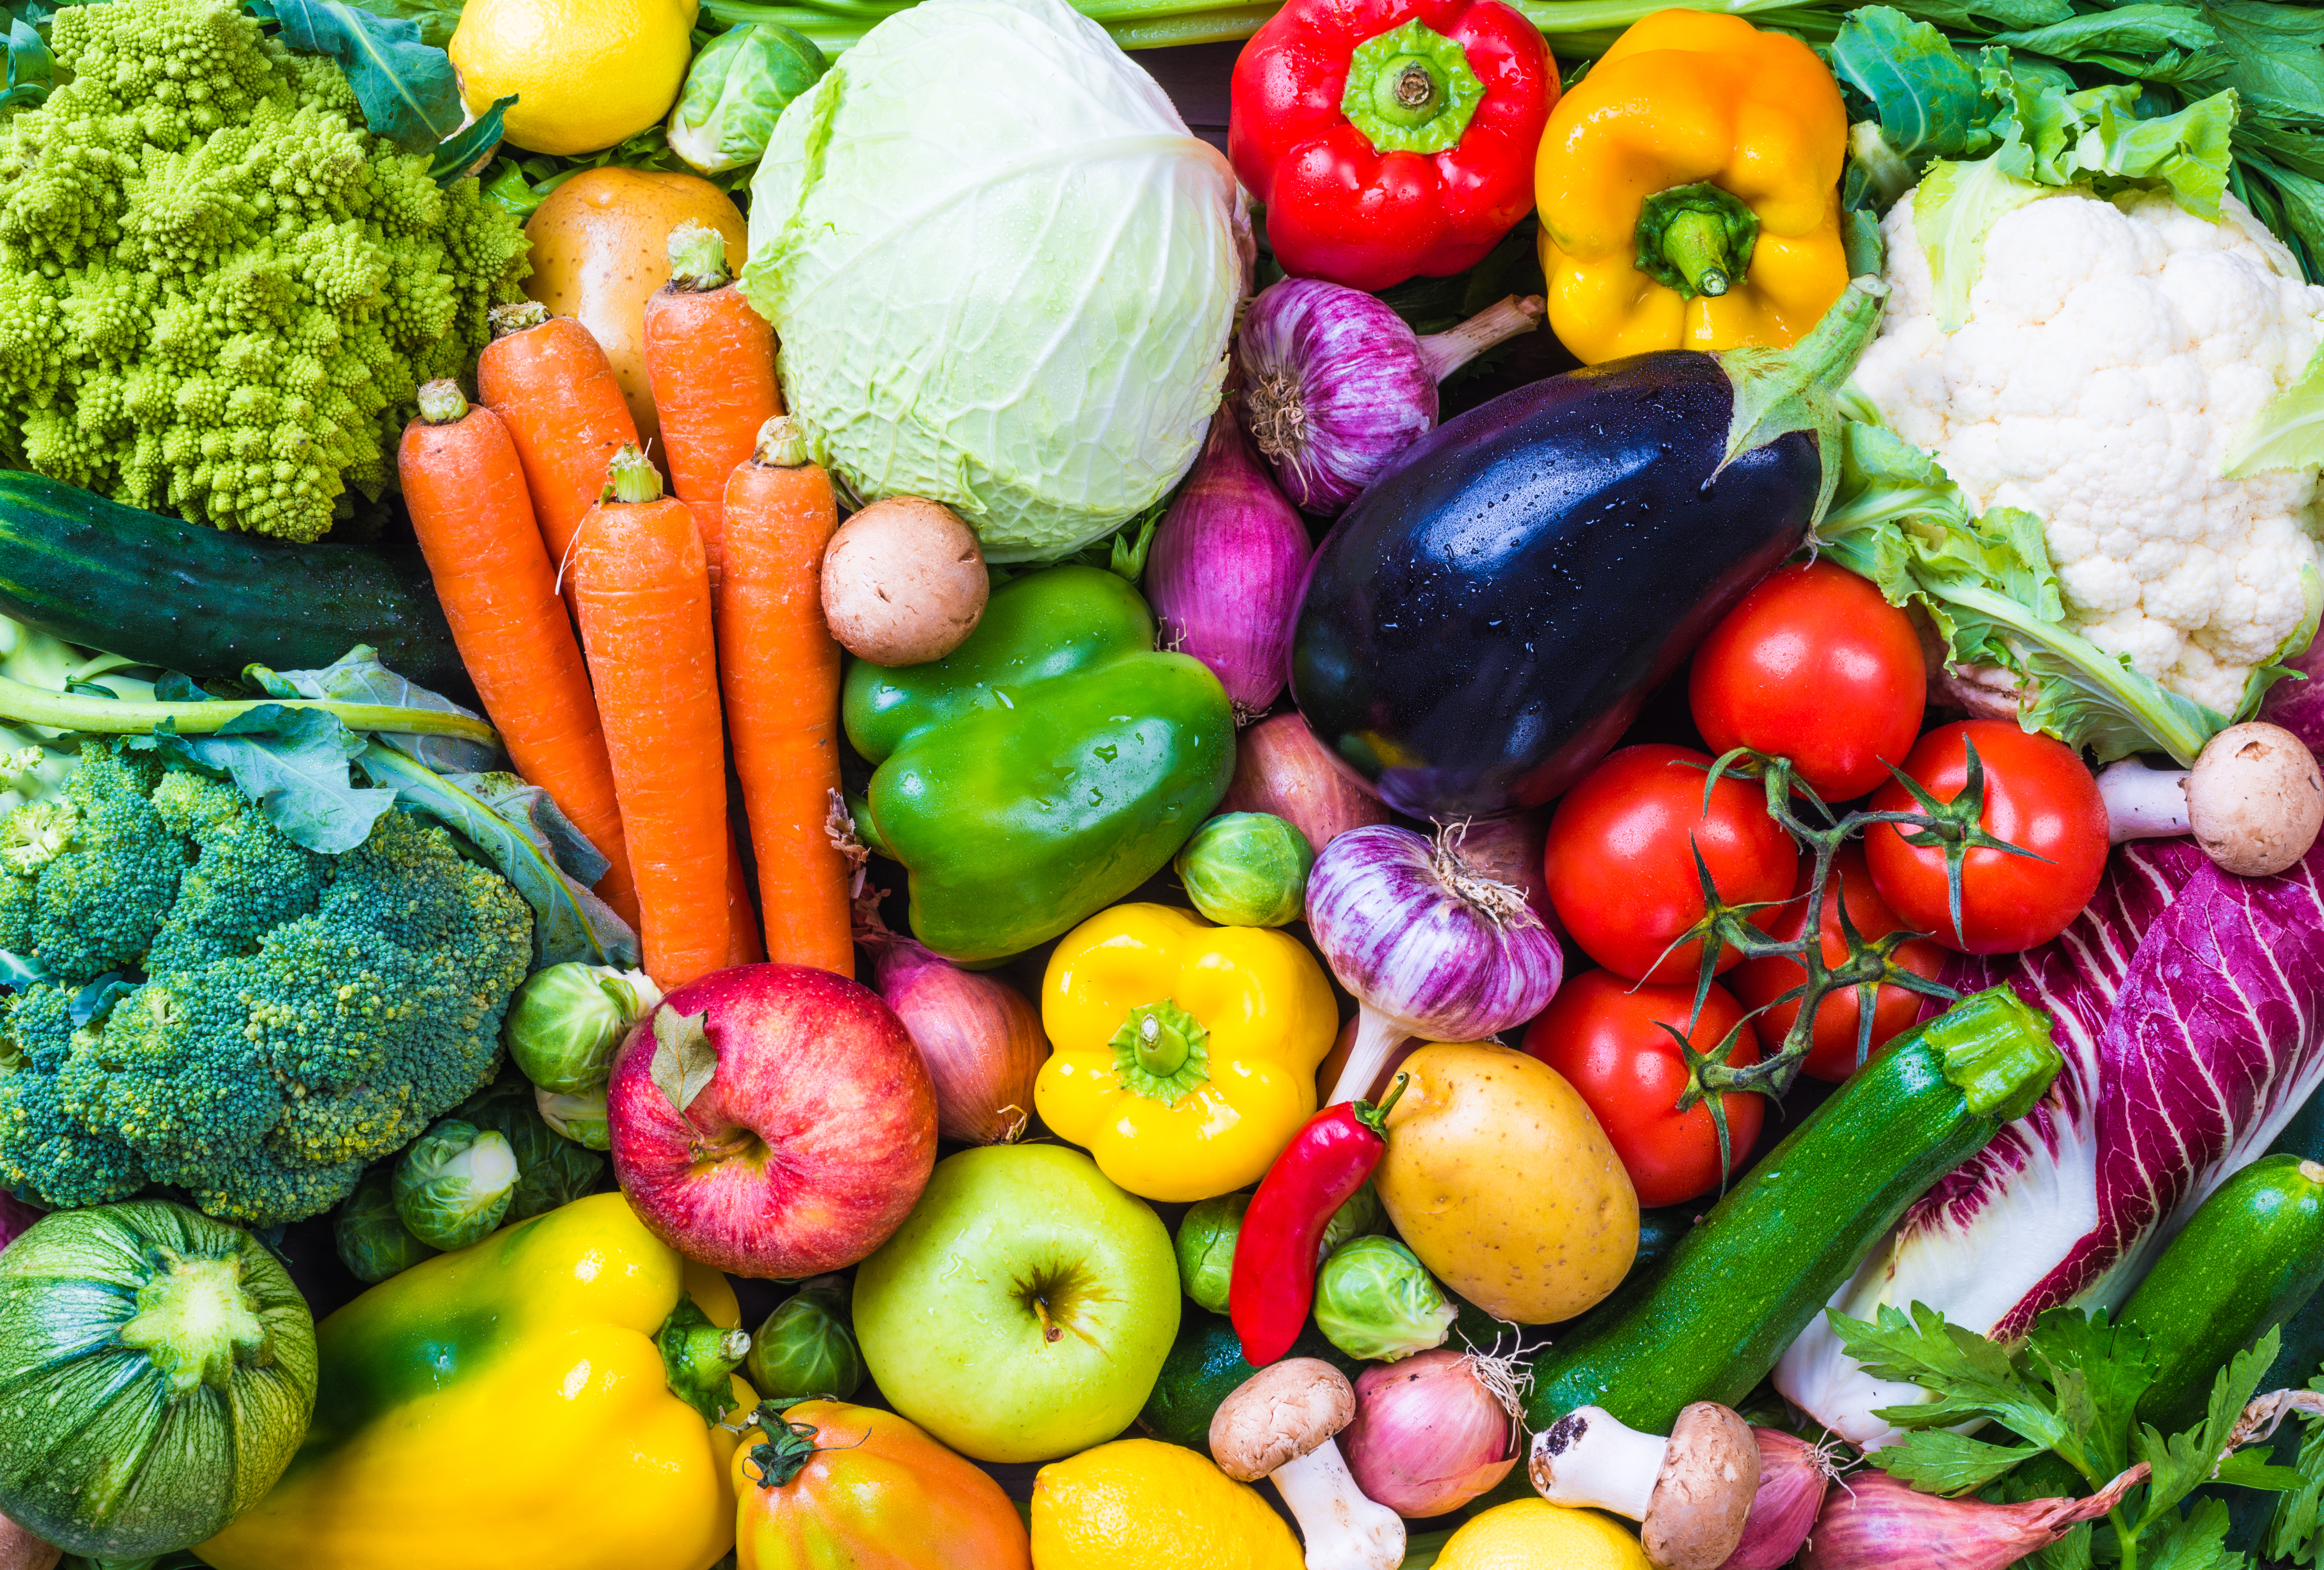 Hazel Technologies: Improving Efficiency and Reducing Waste in the Produce Supply Chain